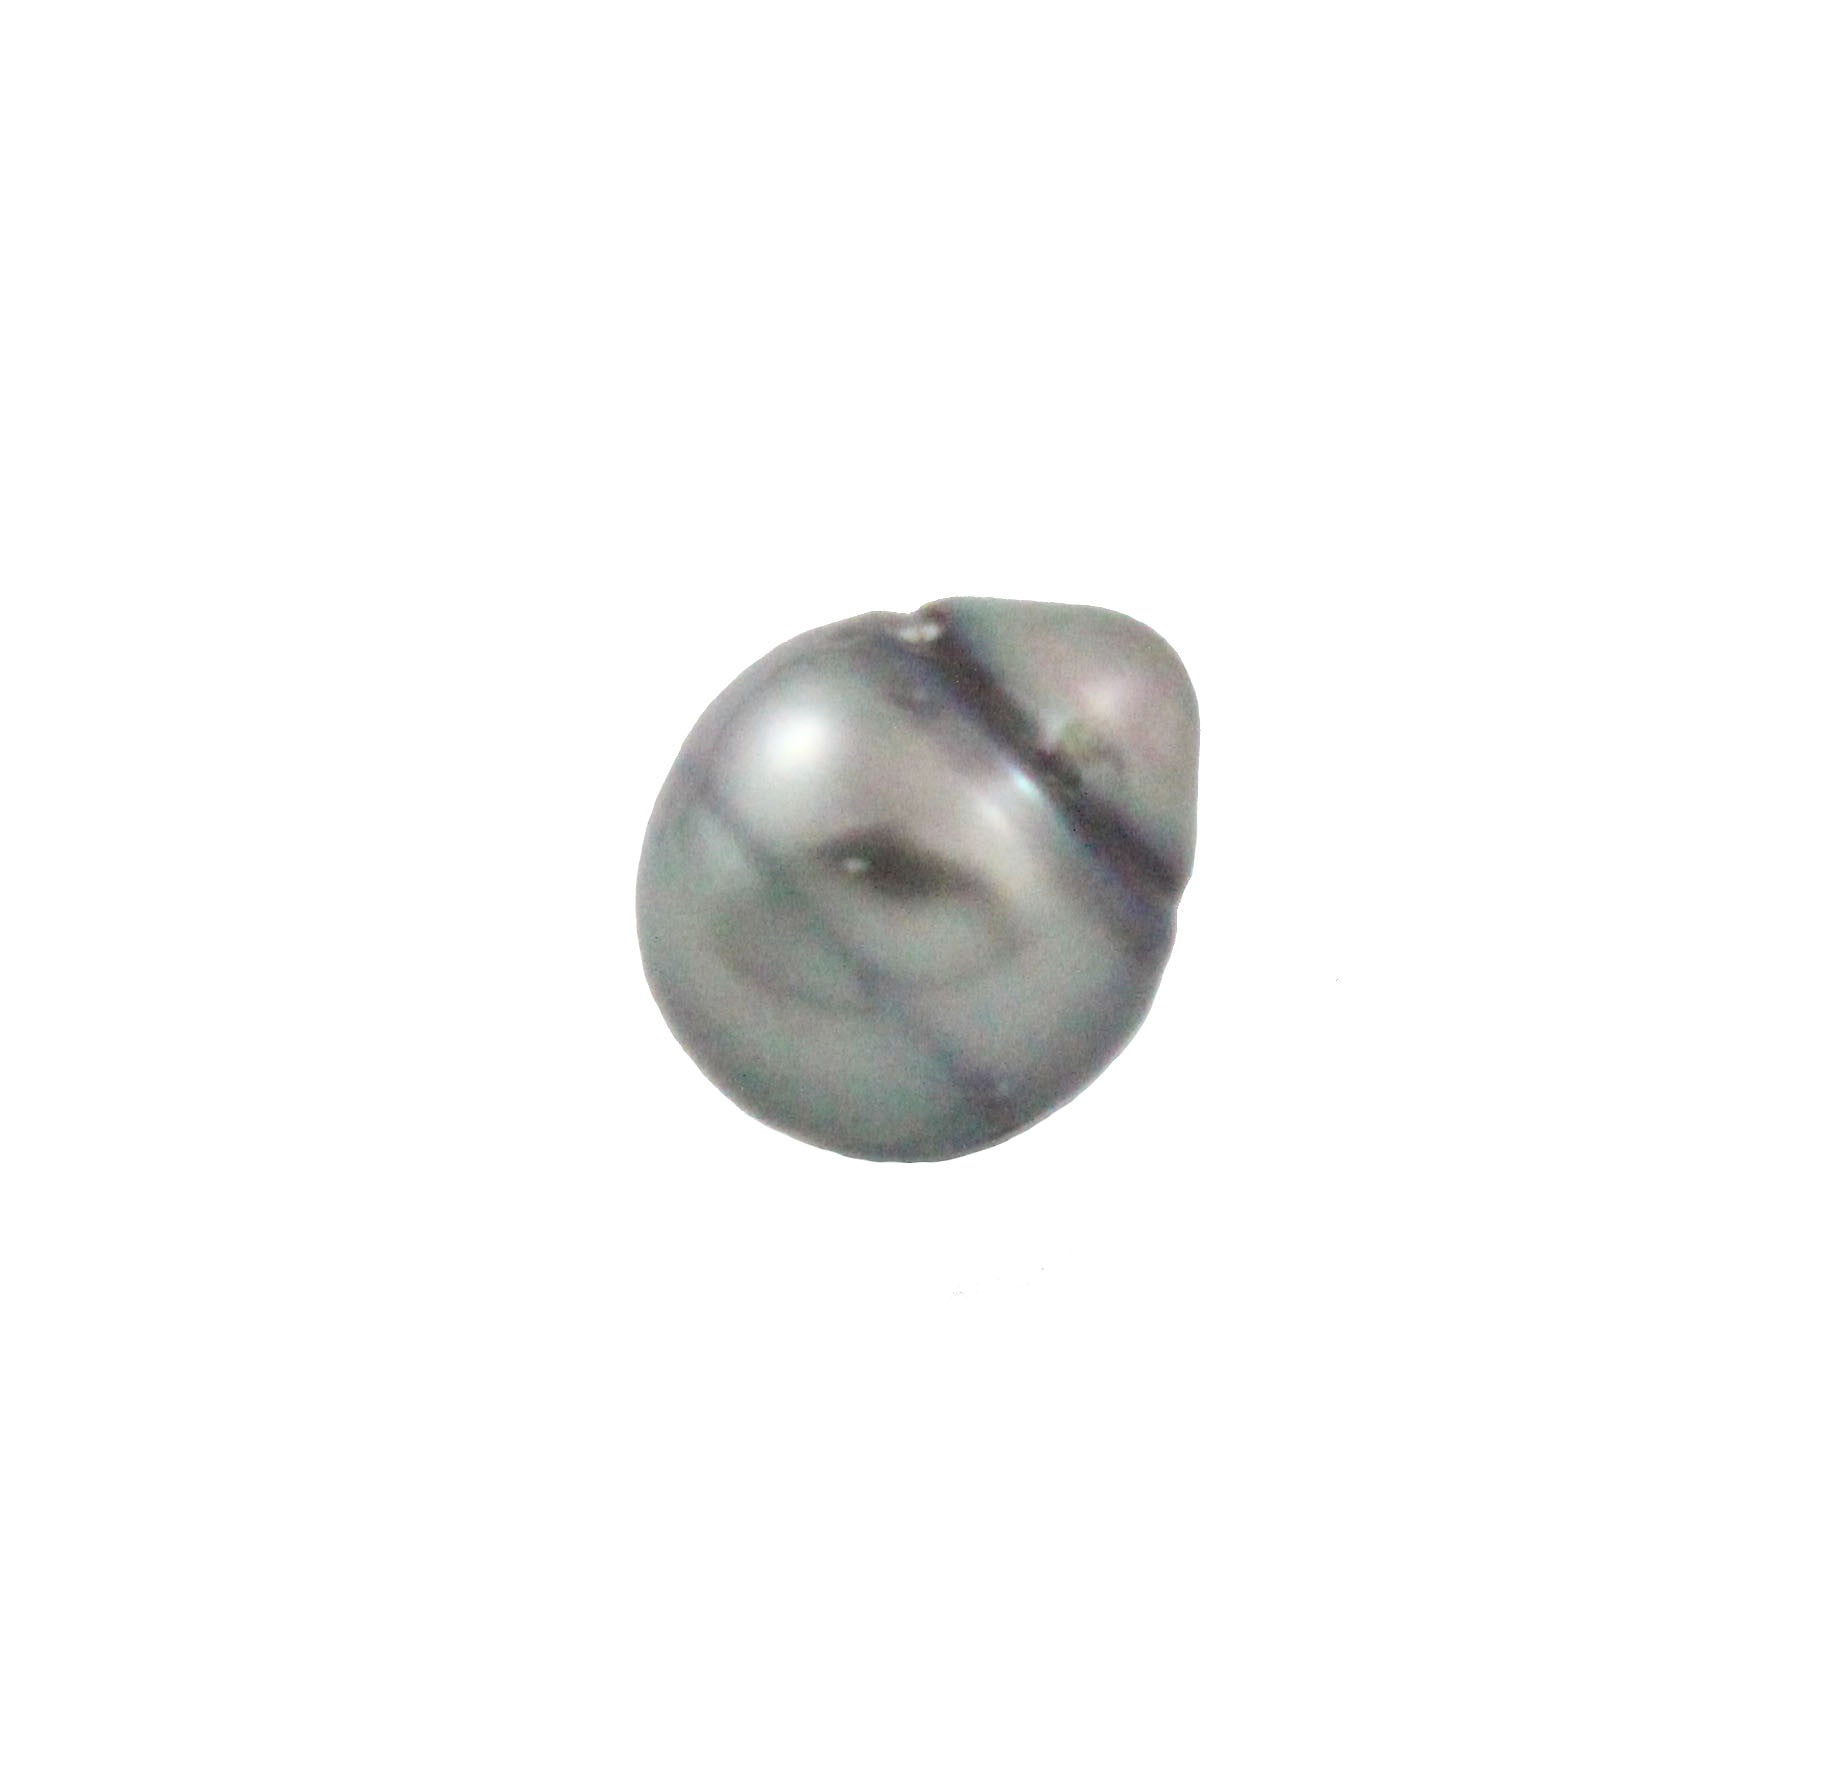 Tahitian pearl undrilled 1.05gr mm 10x8.92mm - Purchase only with custom order - Sarah Hughes - 4